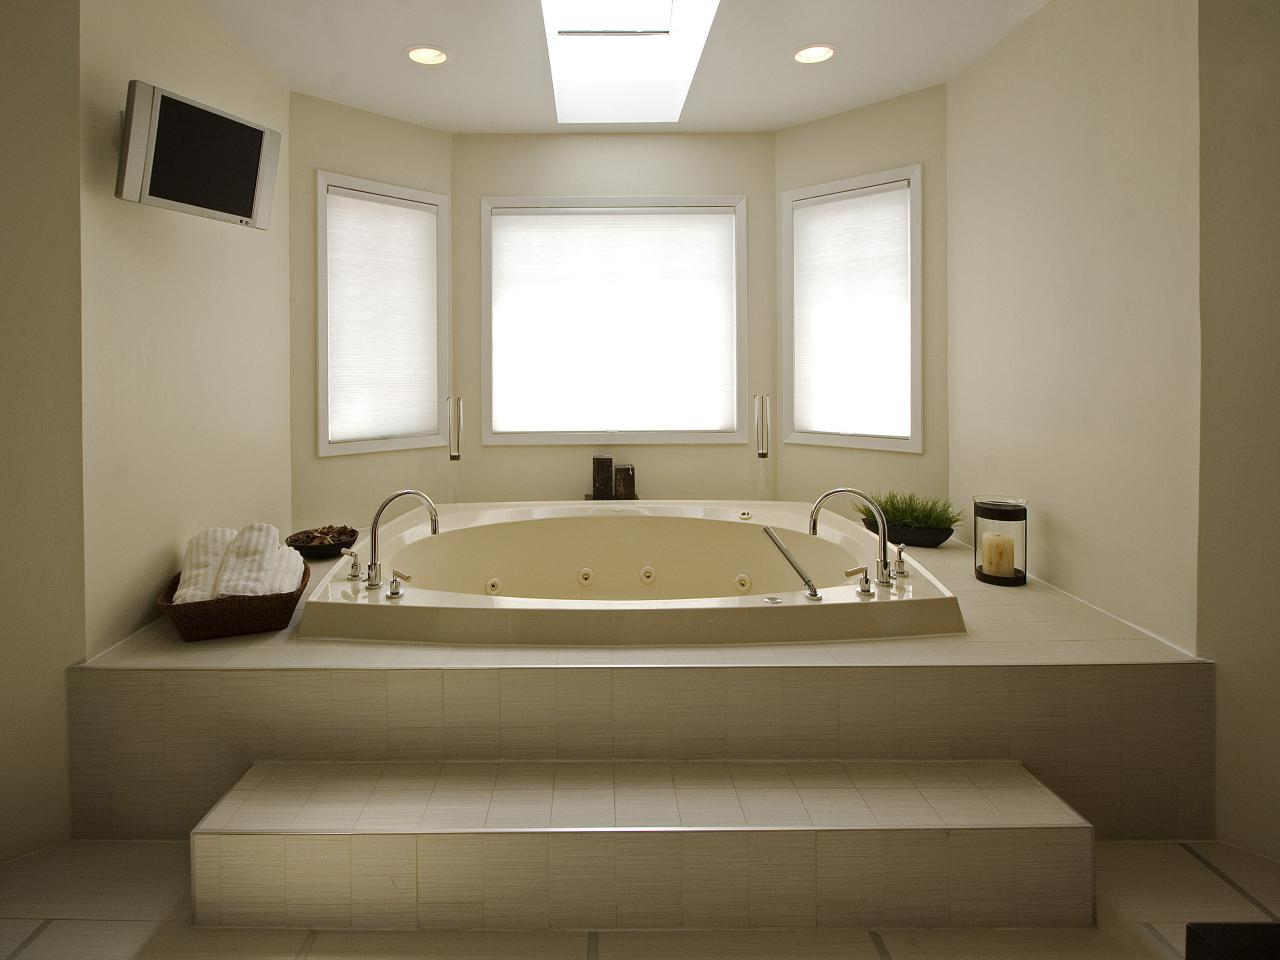 Walk In Tub Designs Pictures Ideas Tips From Hgtv: Modern Bathtub Designs: Pictures, Ideas & Tips From HGTV